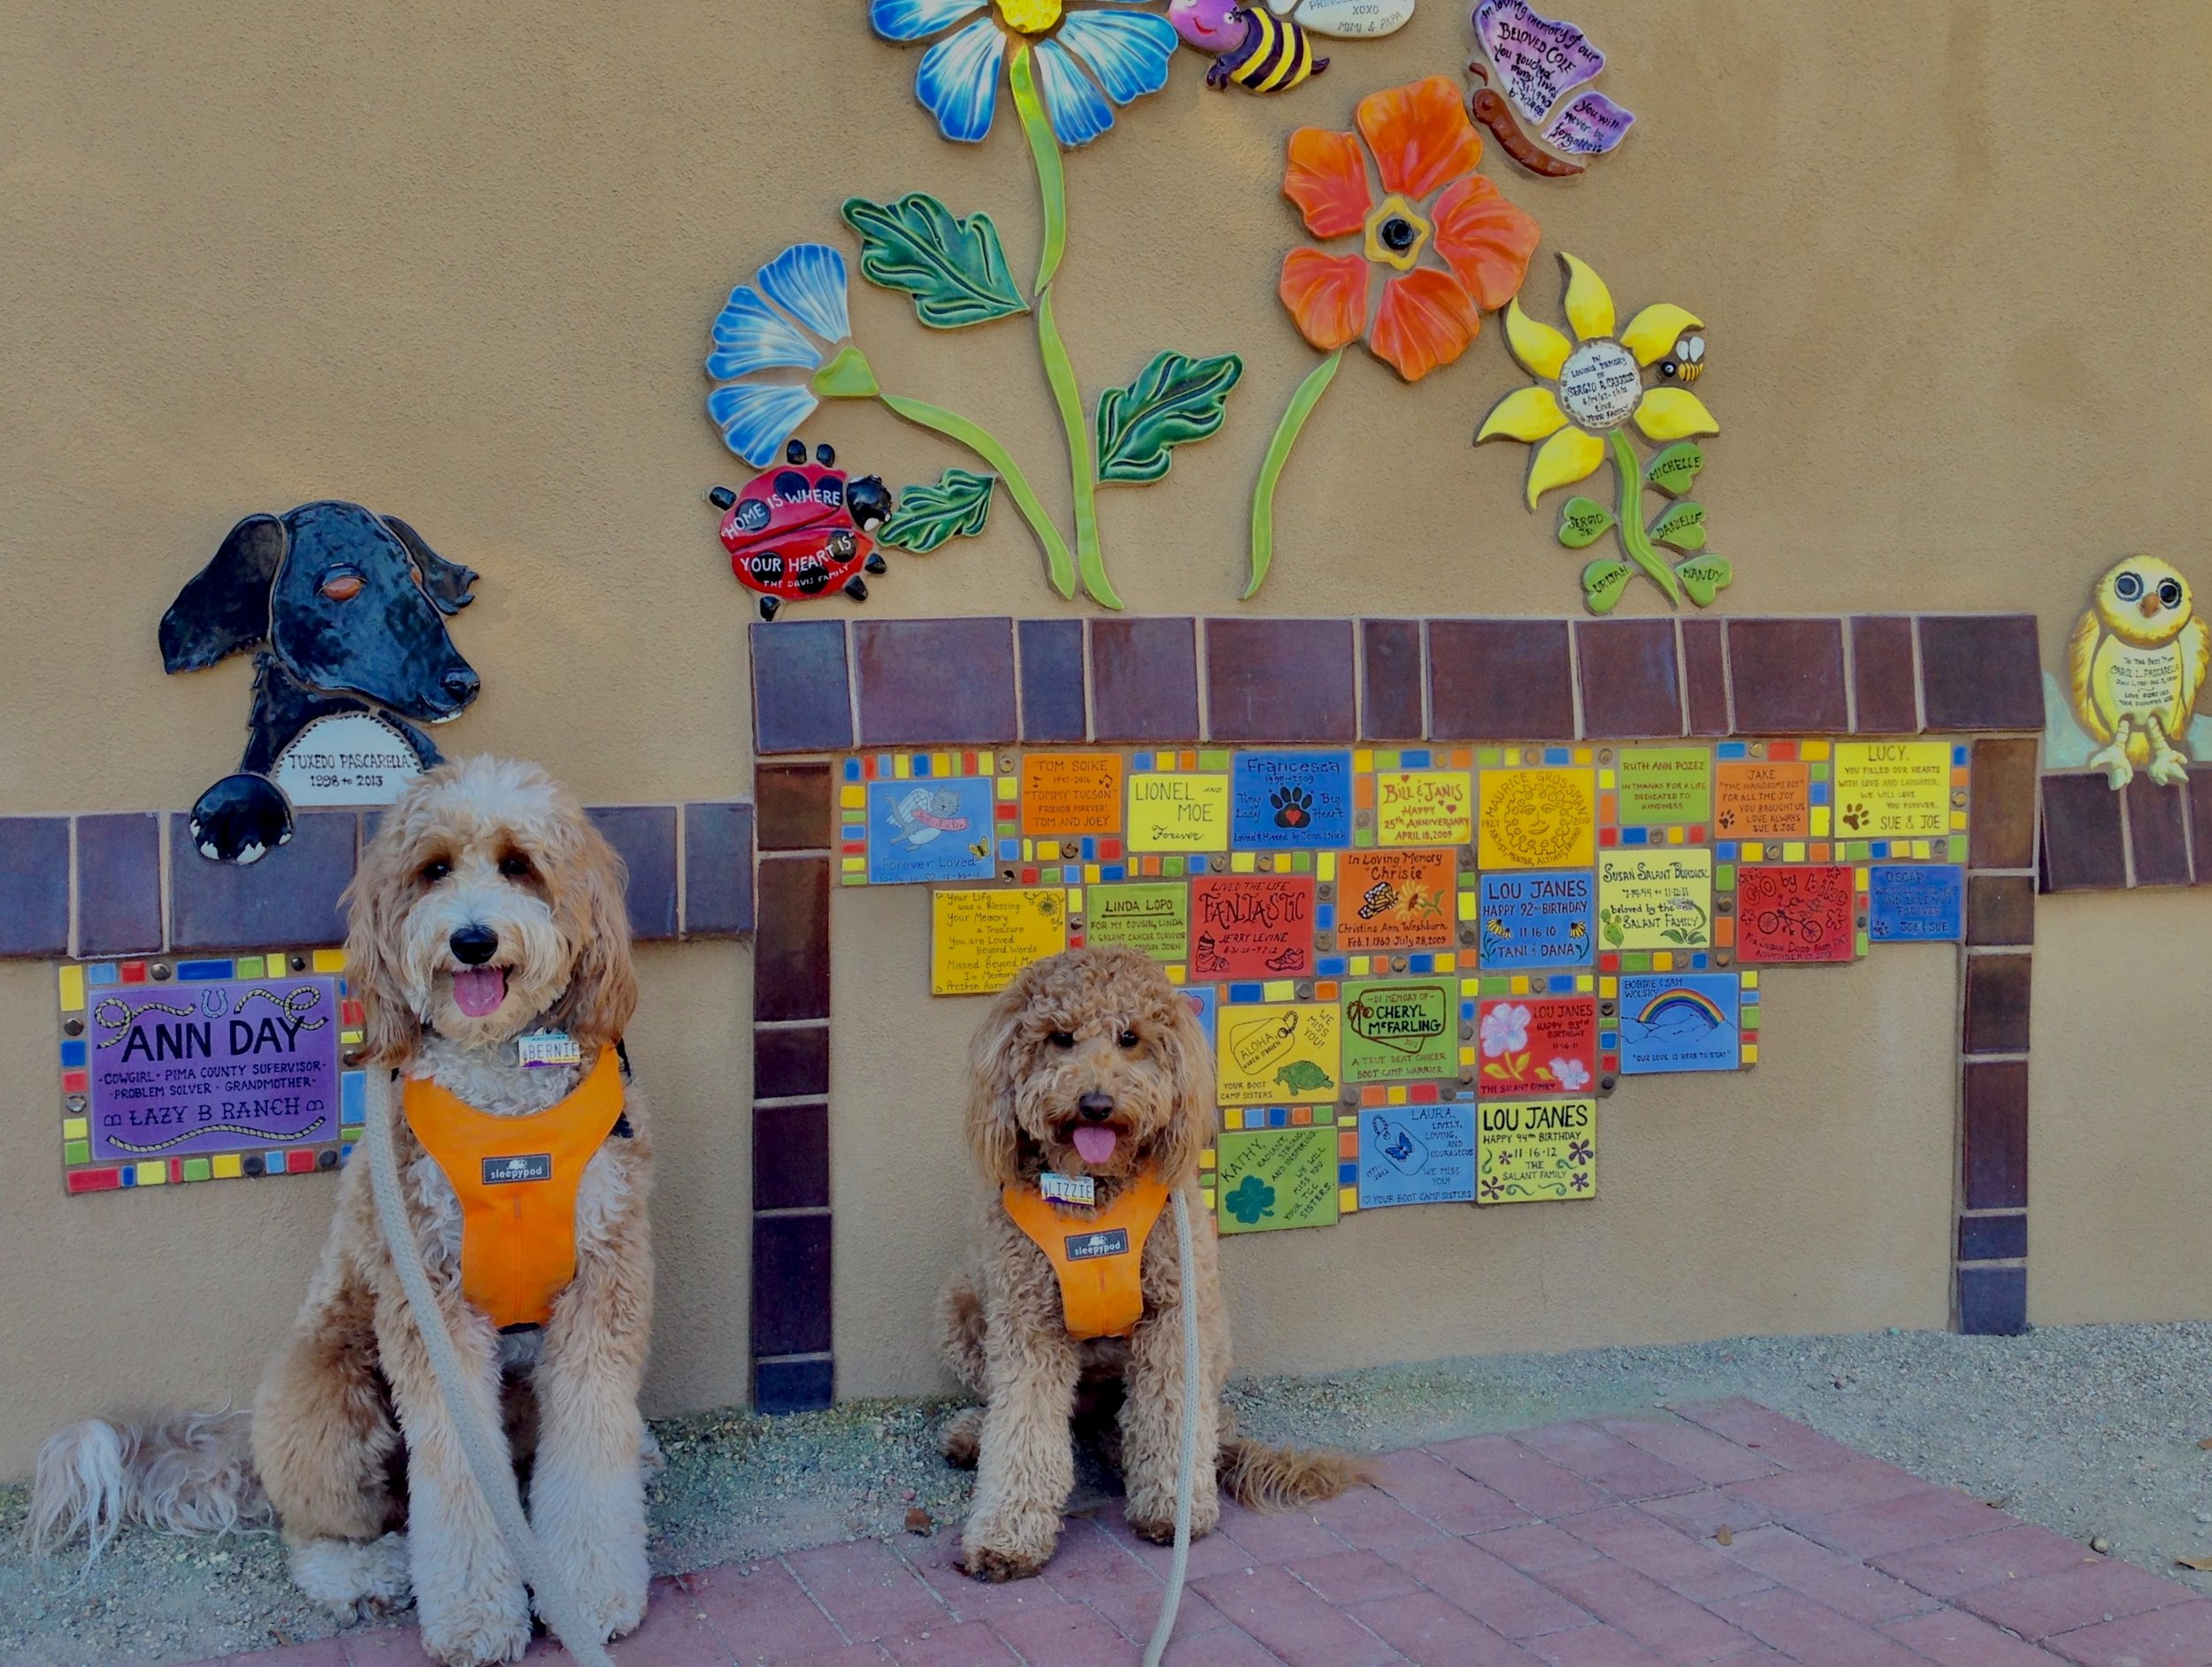 Bernie and Lizzie McSquare loved exploring the Butterfly Memorial Garden for Brandi Fenton on the Rillito River Park Path. The colorful tiles and designs were scattered all around the garden.